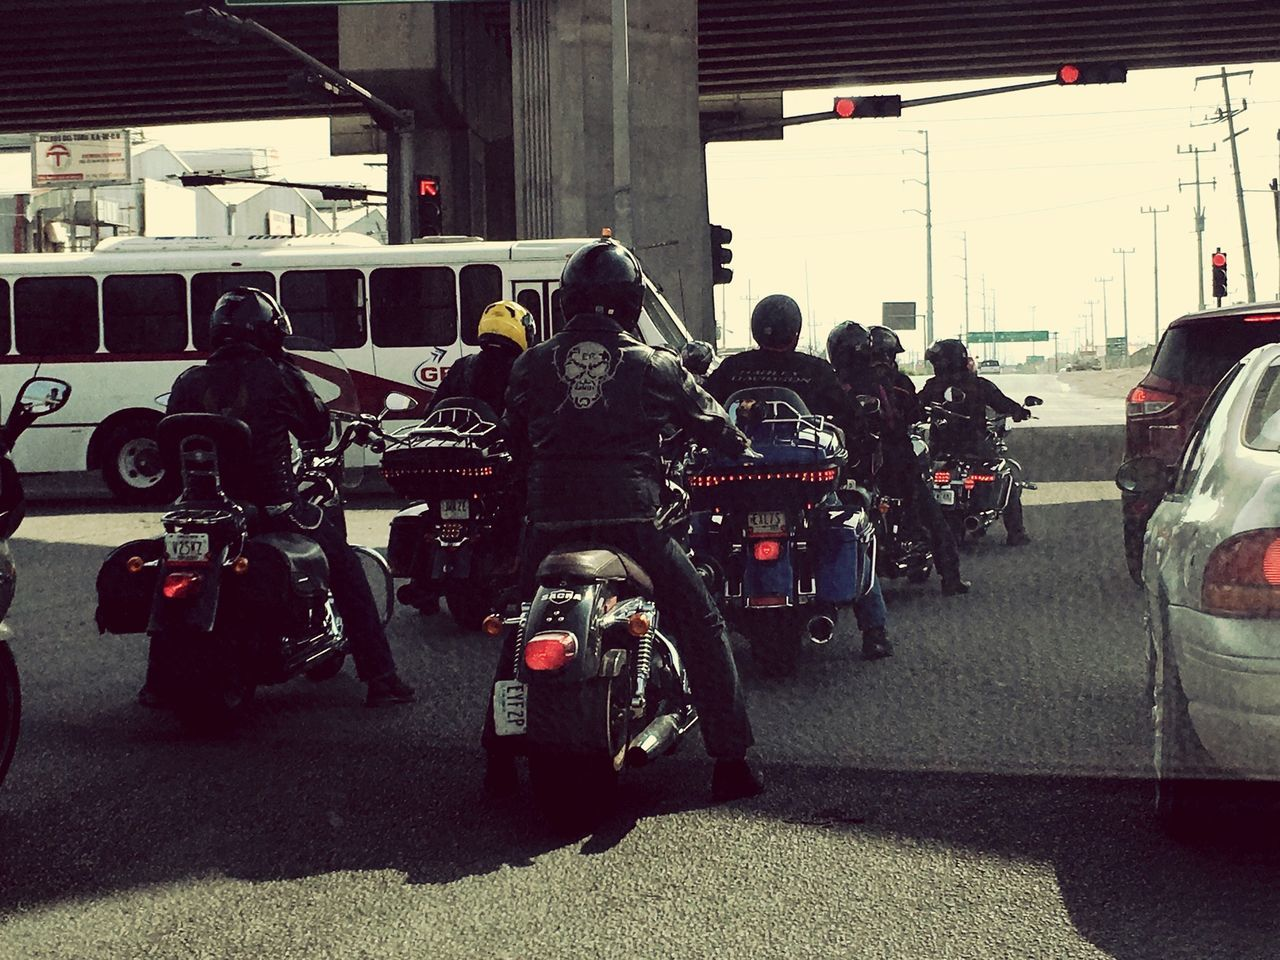 transportation, land vehicle, real people, men, mode of transport, motorcycle, stationary, women, day, uniform, helmet, built structure, large group of people, full length, lifestyles, standing, architecture, building exterior, outdoors, biker, adult, people